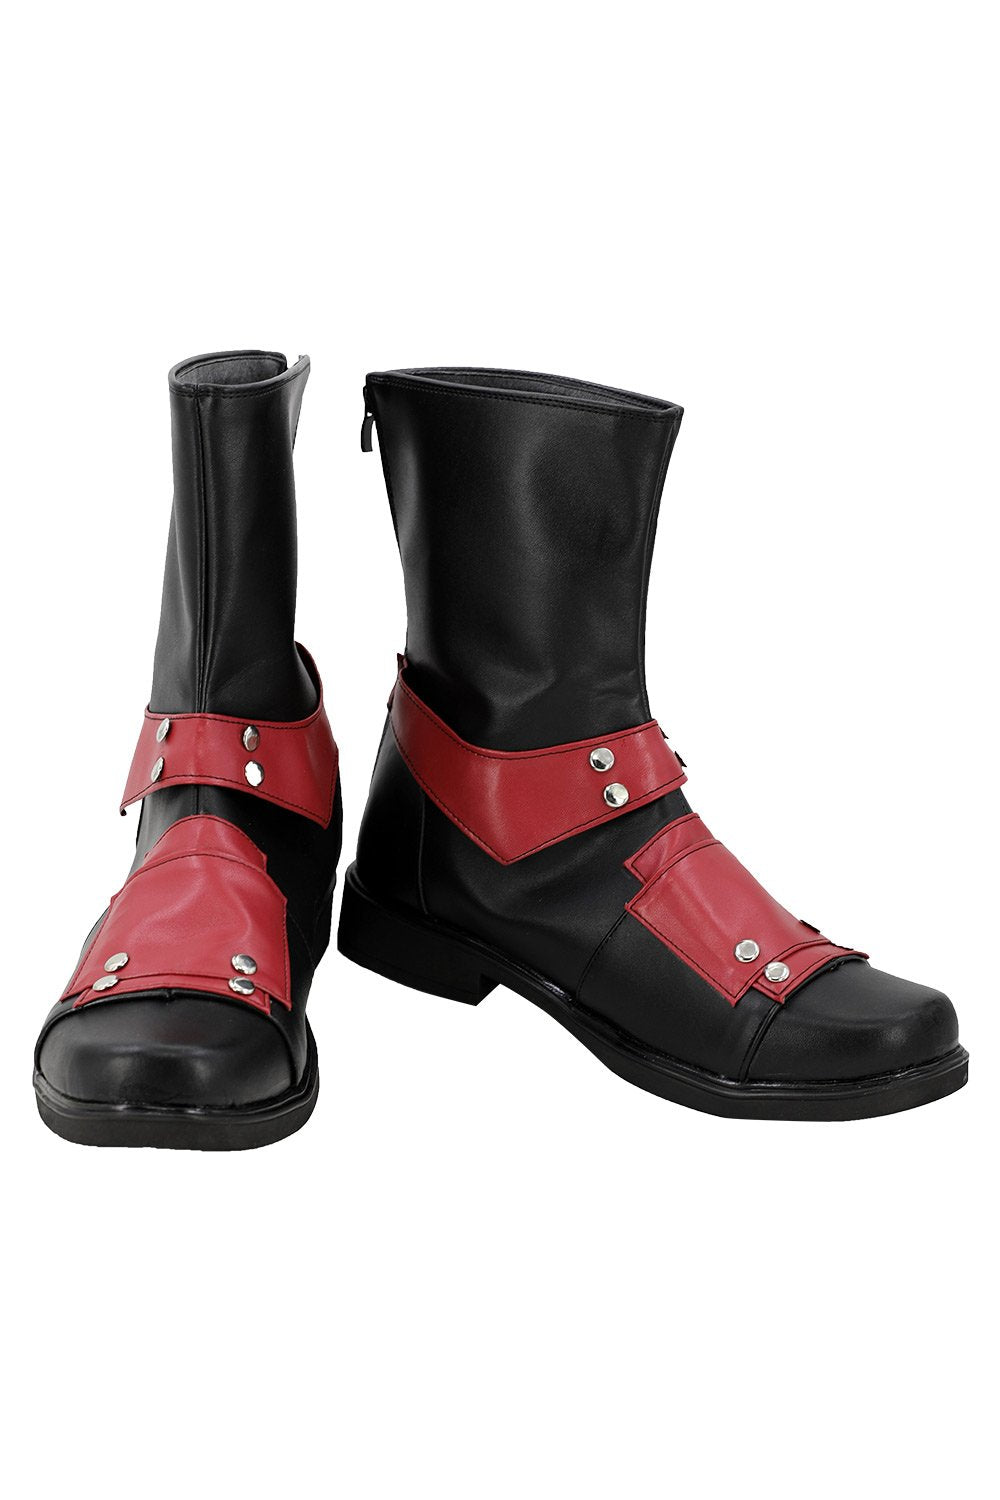 Deadpool2 Wade Wilson Cosplay Shoes Boots